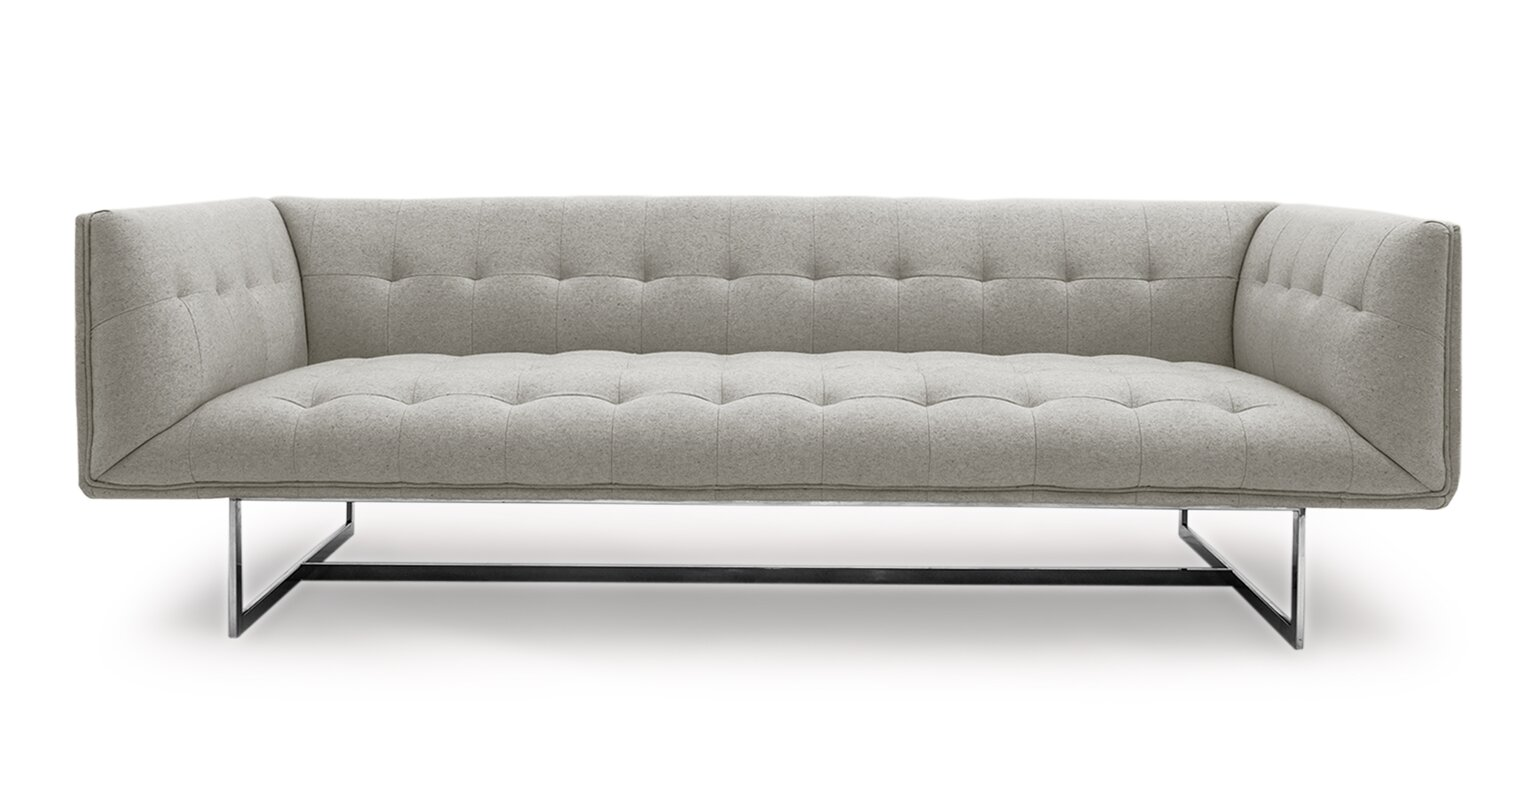 Chesterfield sofa modern  Kardiel Edward Mid Century Modern Chesterfield Sofa & Reviews ...